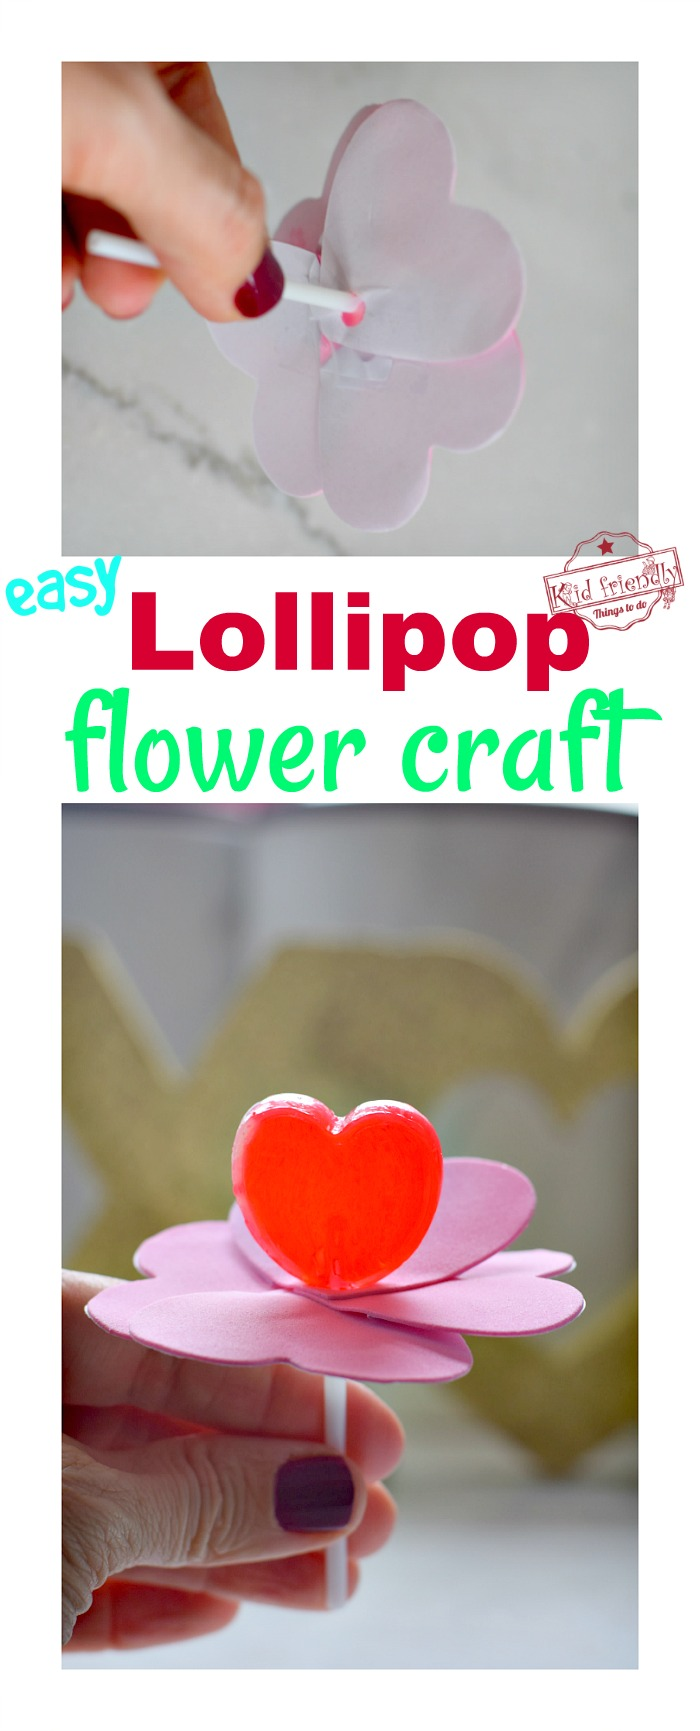 Lollipop Flower Craft for Kids to Make